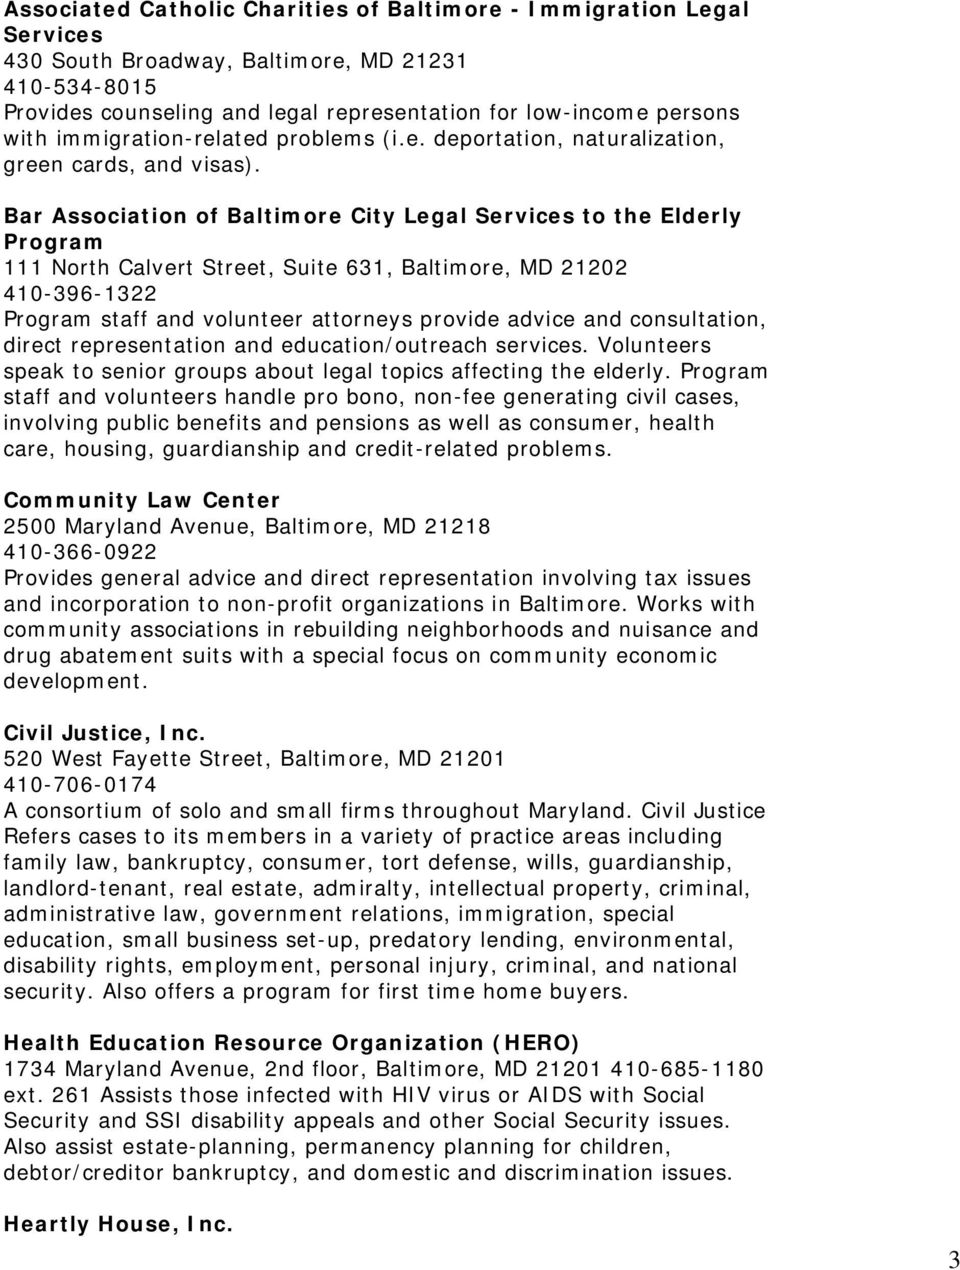 Bar Association of Baltimore City Legal Services to the Elderly Program 111 North Calvert Street, Suite 631, Baltimore, MD 21202 410-396-1322 Program staff and volunteer attorneys provide advice and